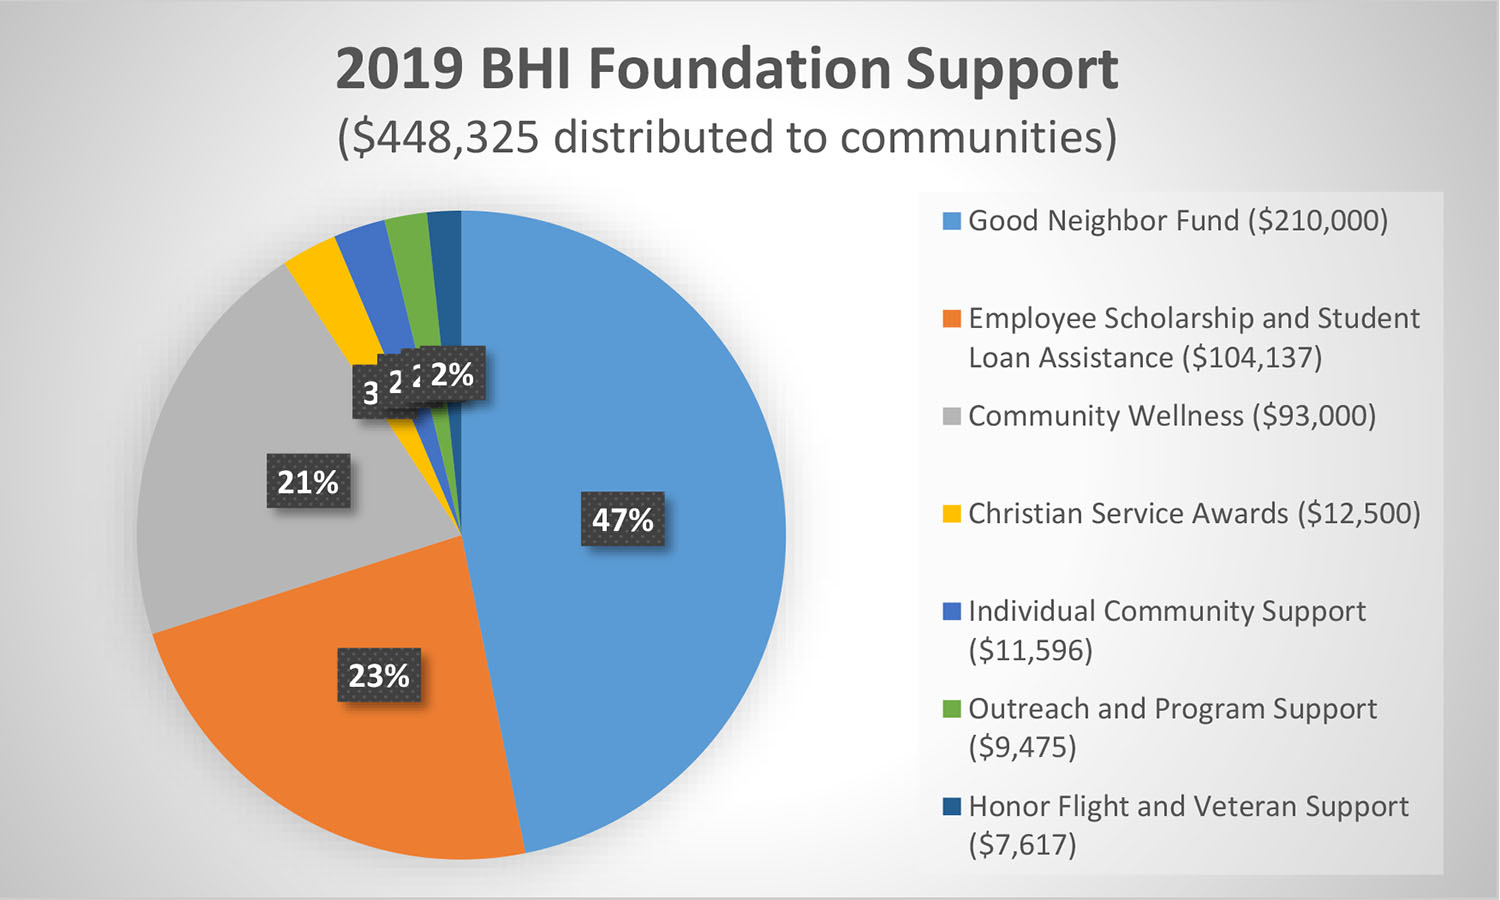 BHI Foundation 2019 distributions to the community (Pie Chart)